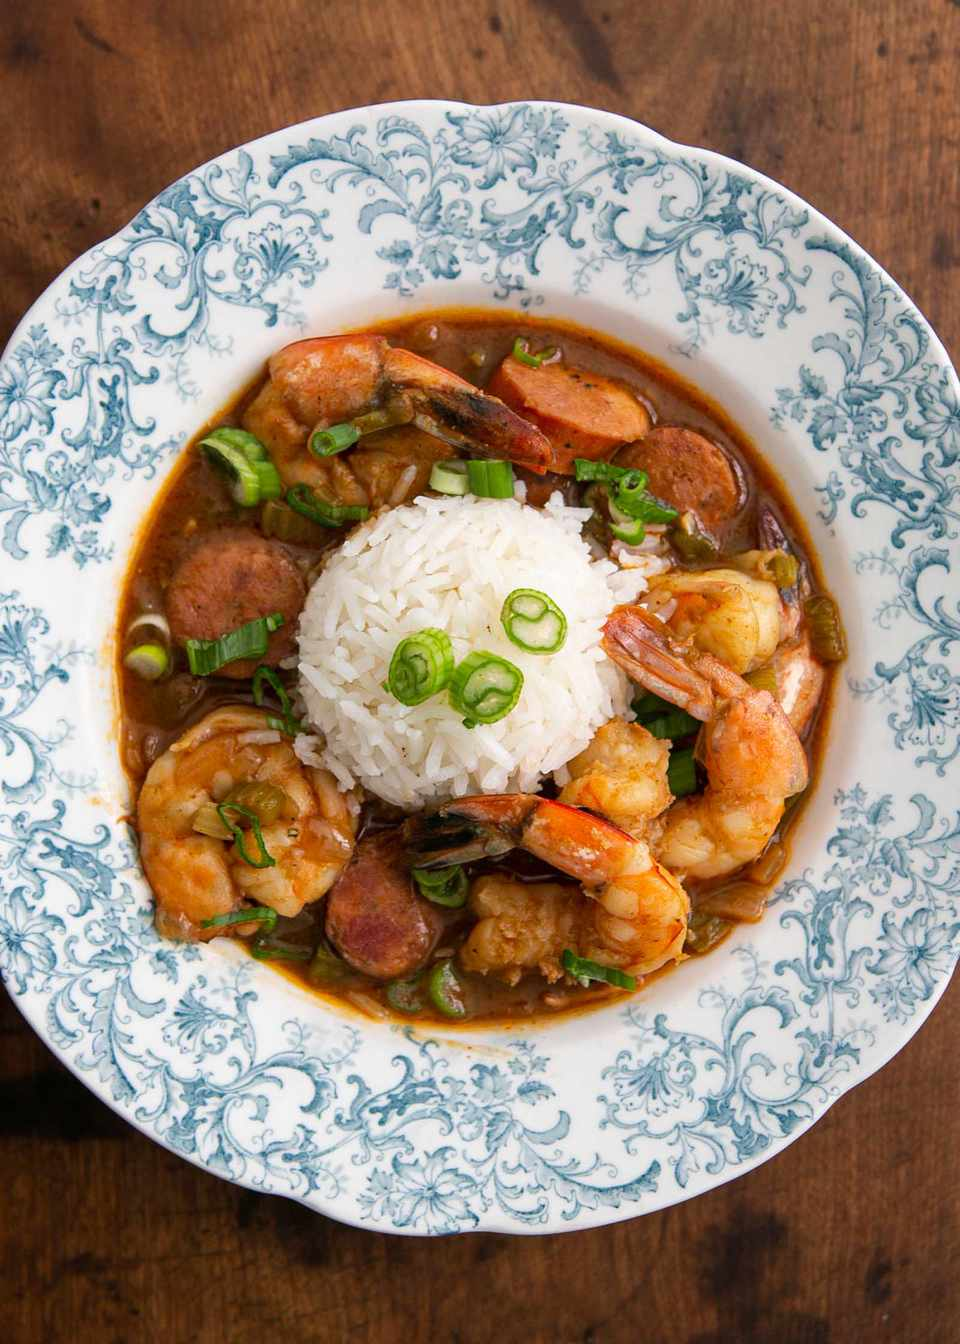 Shrimp gumbo with andouille sausage in a shallow bowl